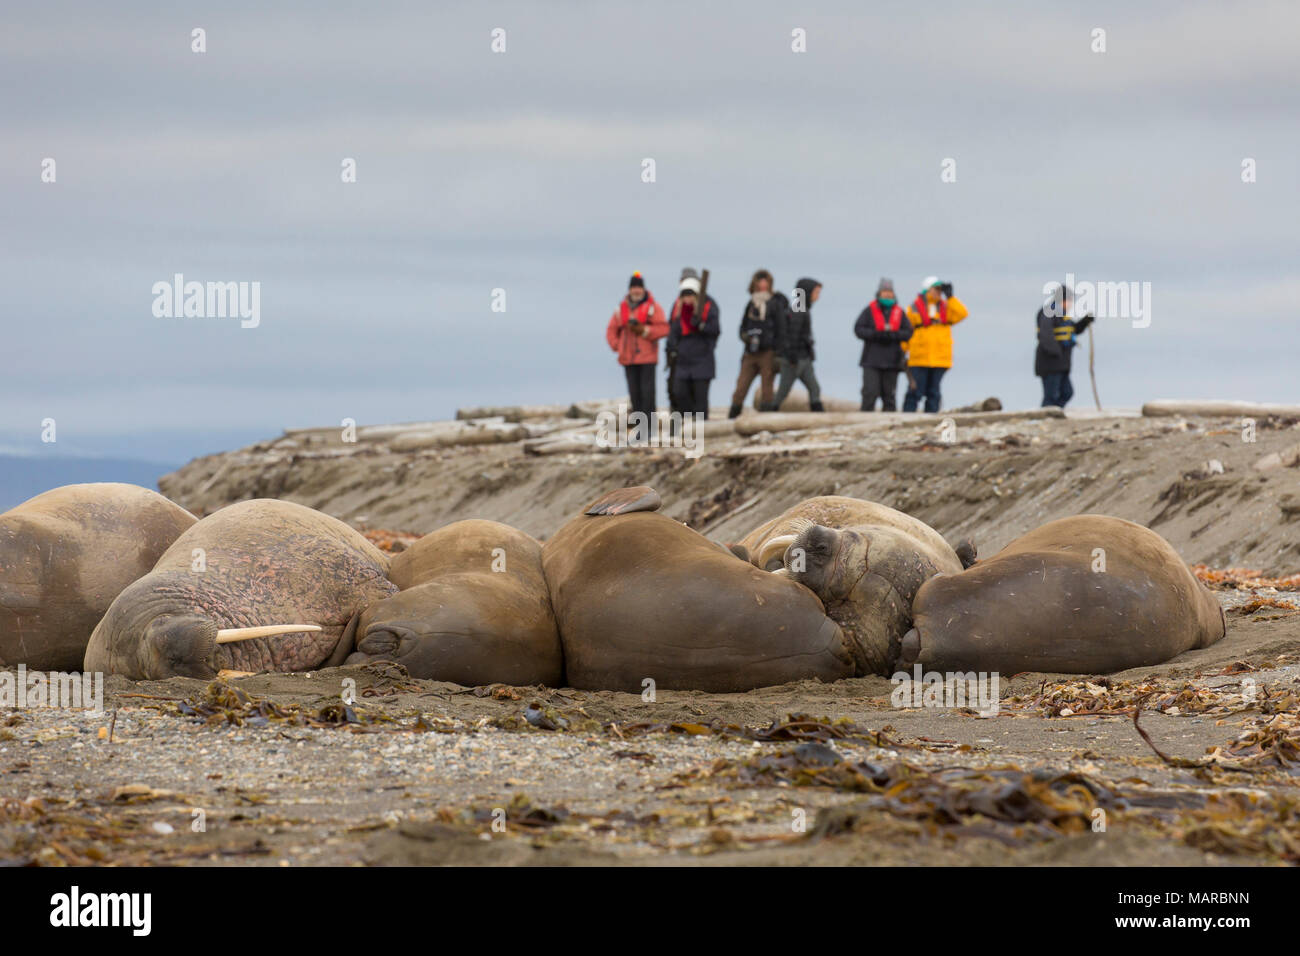 Atlantic Walrus (Odobenus rosmarus). Tourists taking pictures of walrusses on a beach. Svalbard, Norway - Stock Image